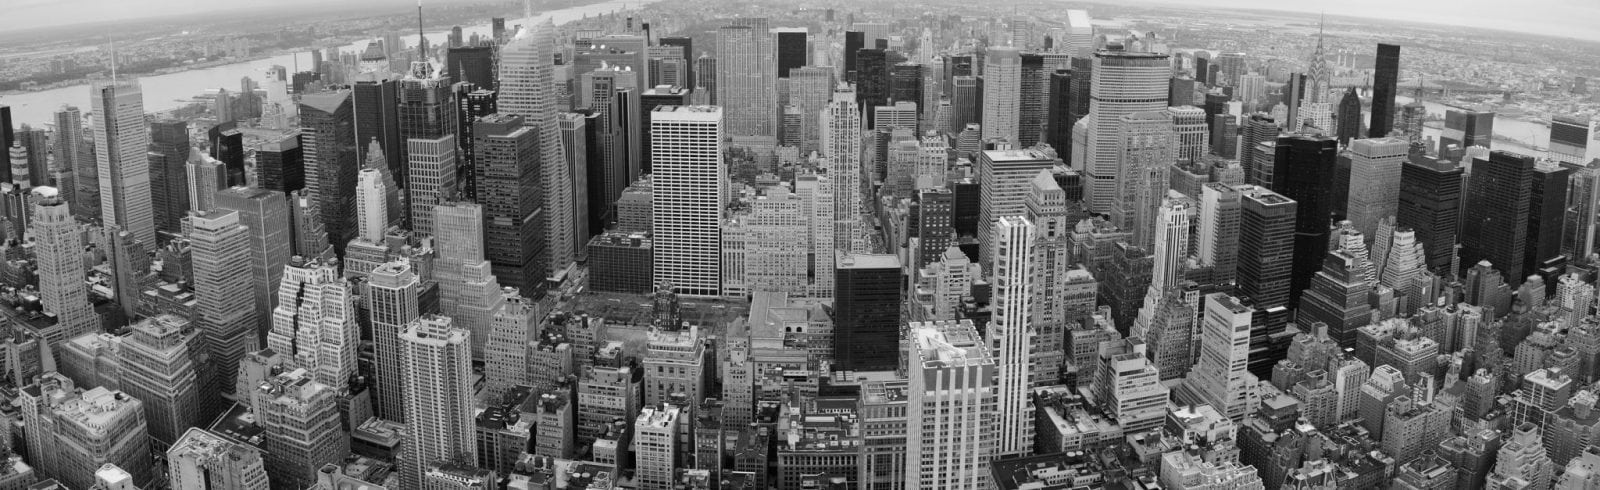 Panoramic shot of New York City